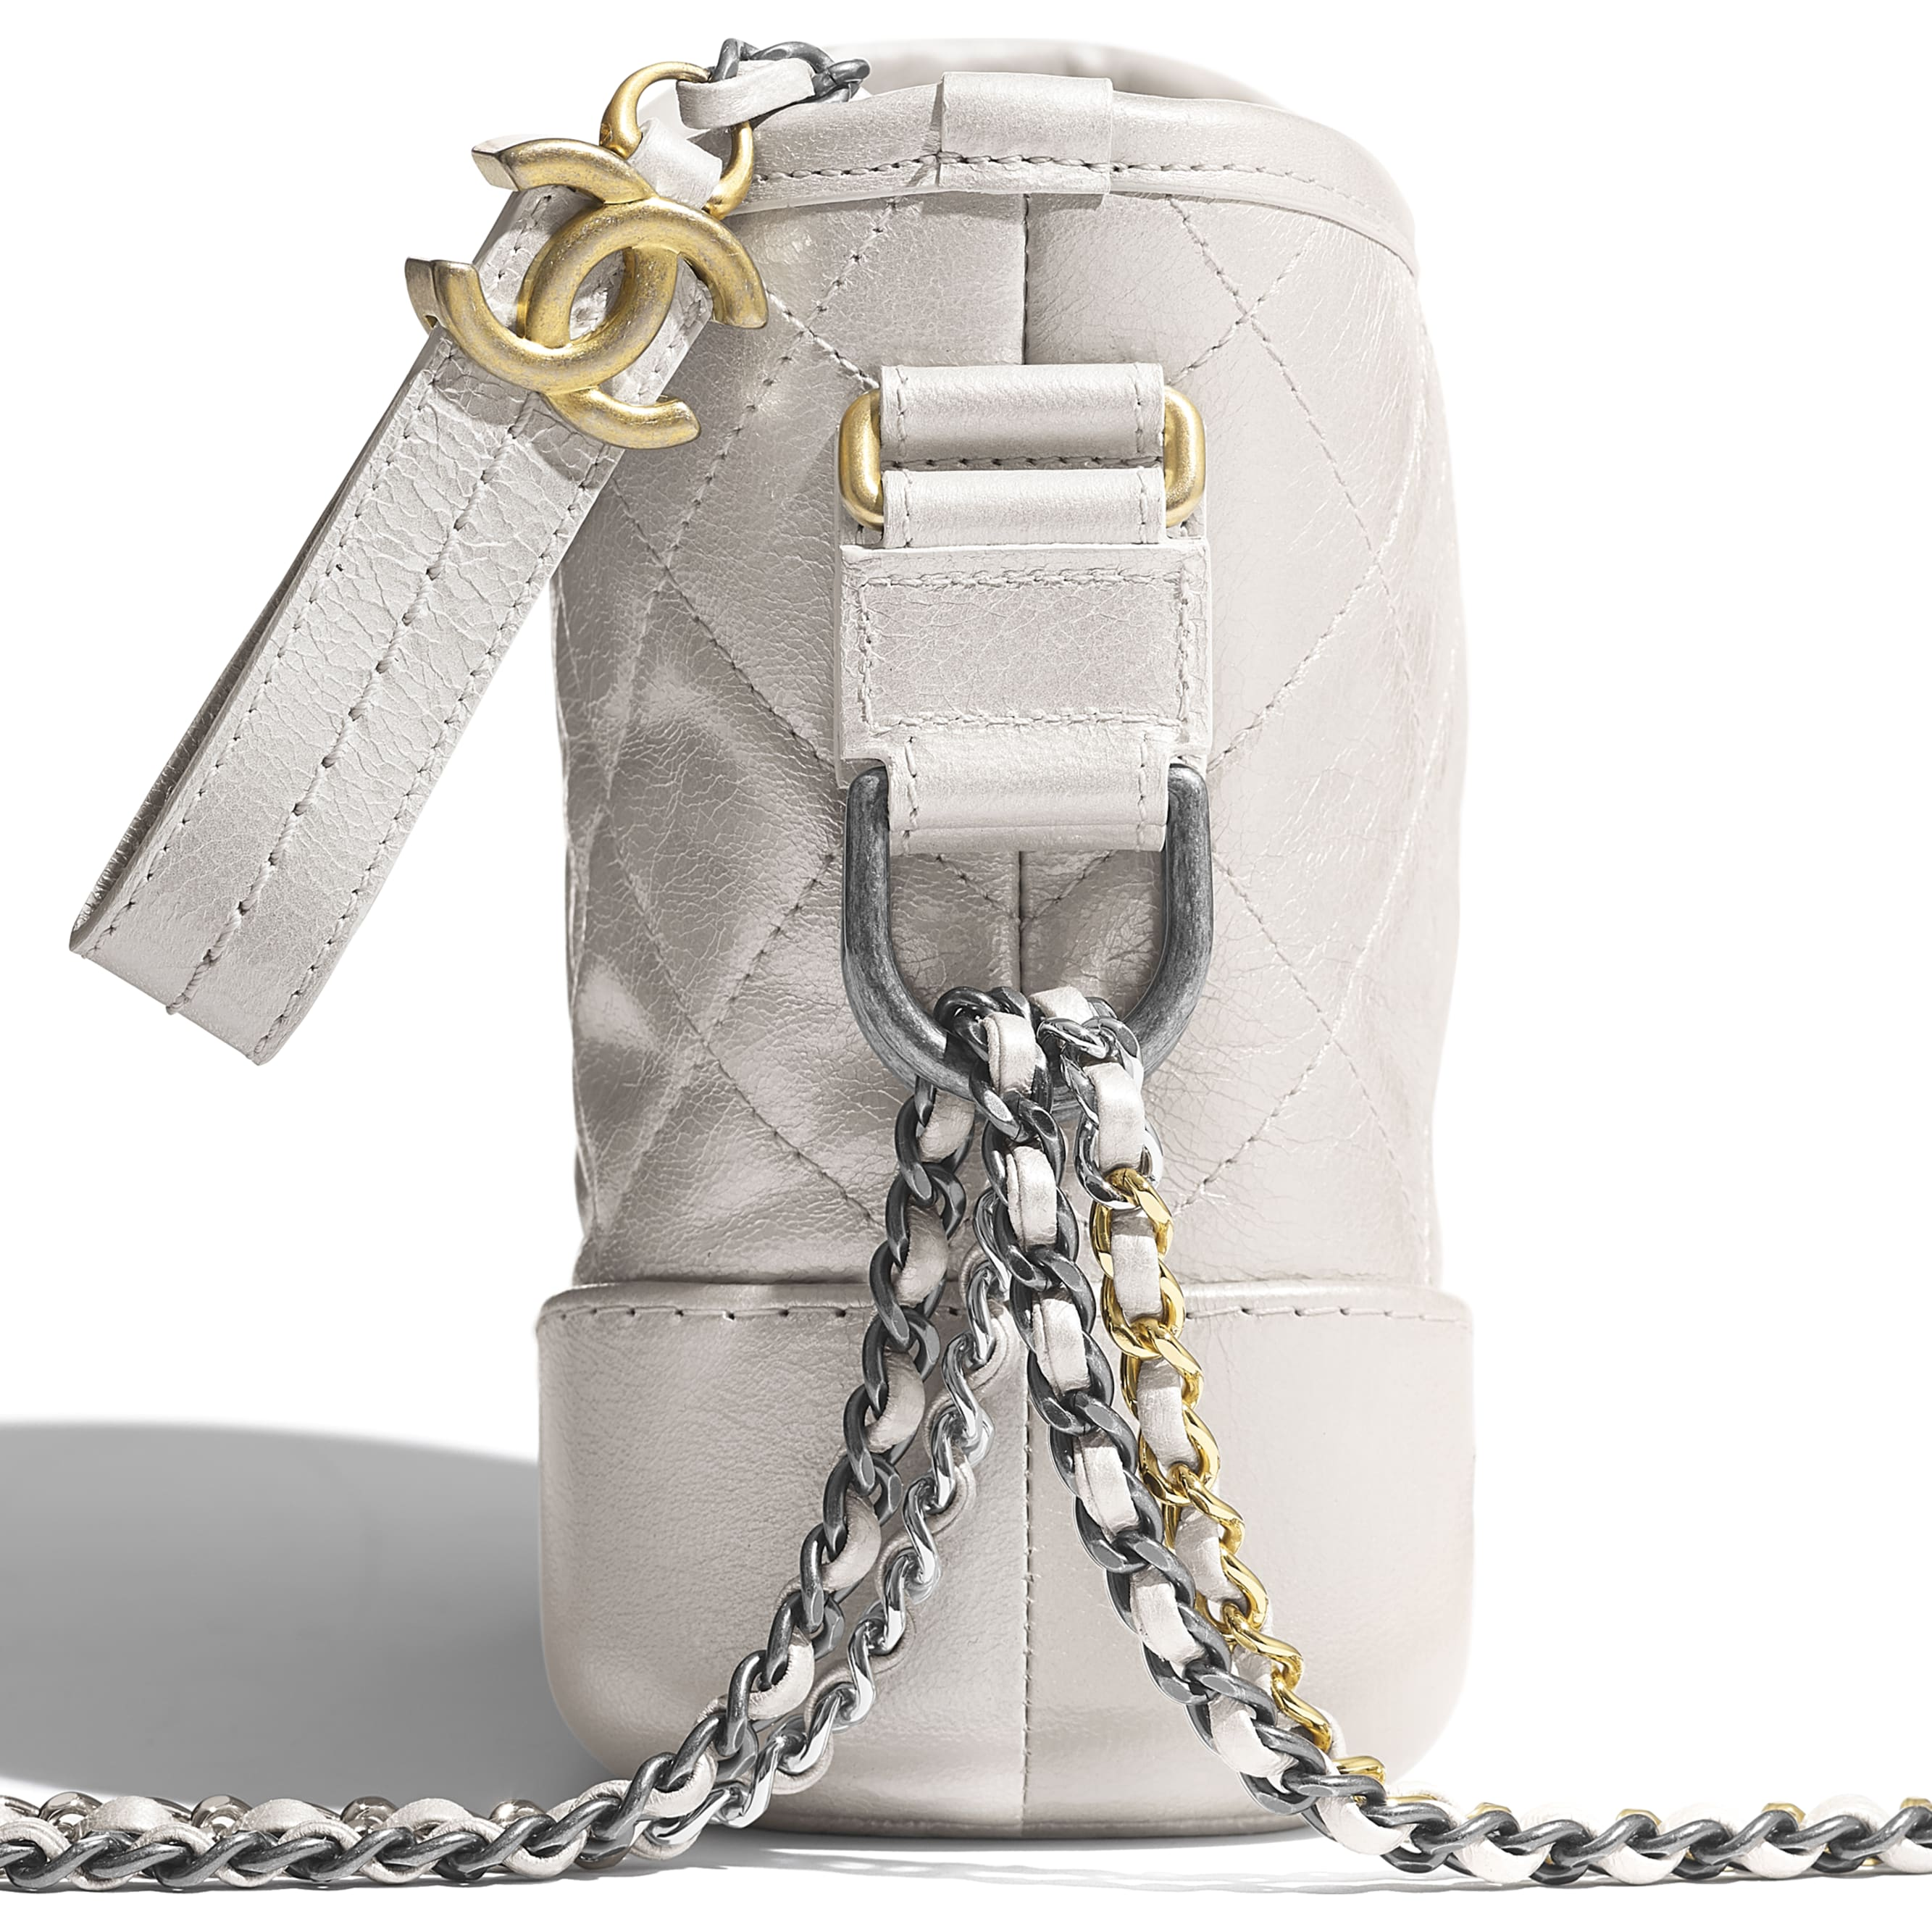 CHANEL'S GABRIELLE Small Hobo Bag - Silver - Metallic Crumpled Lambskin, Calfskin, Gold-Tone & Silver-Tone Metal - CHANEL - Extra view - see standard sized version